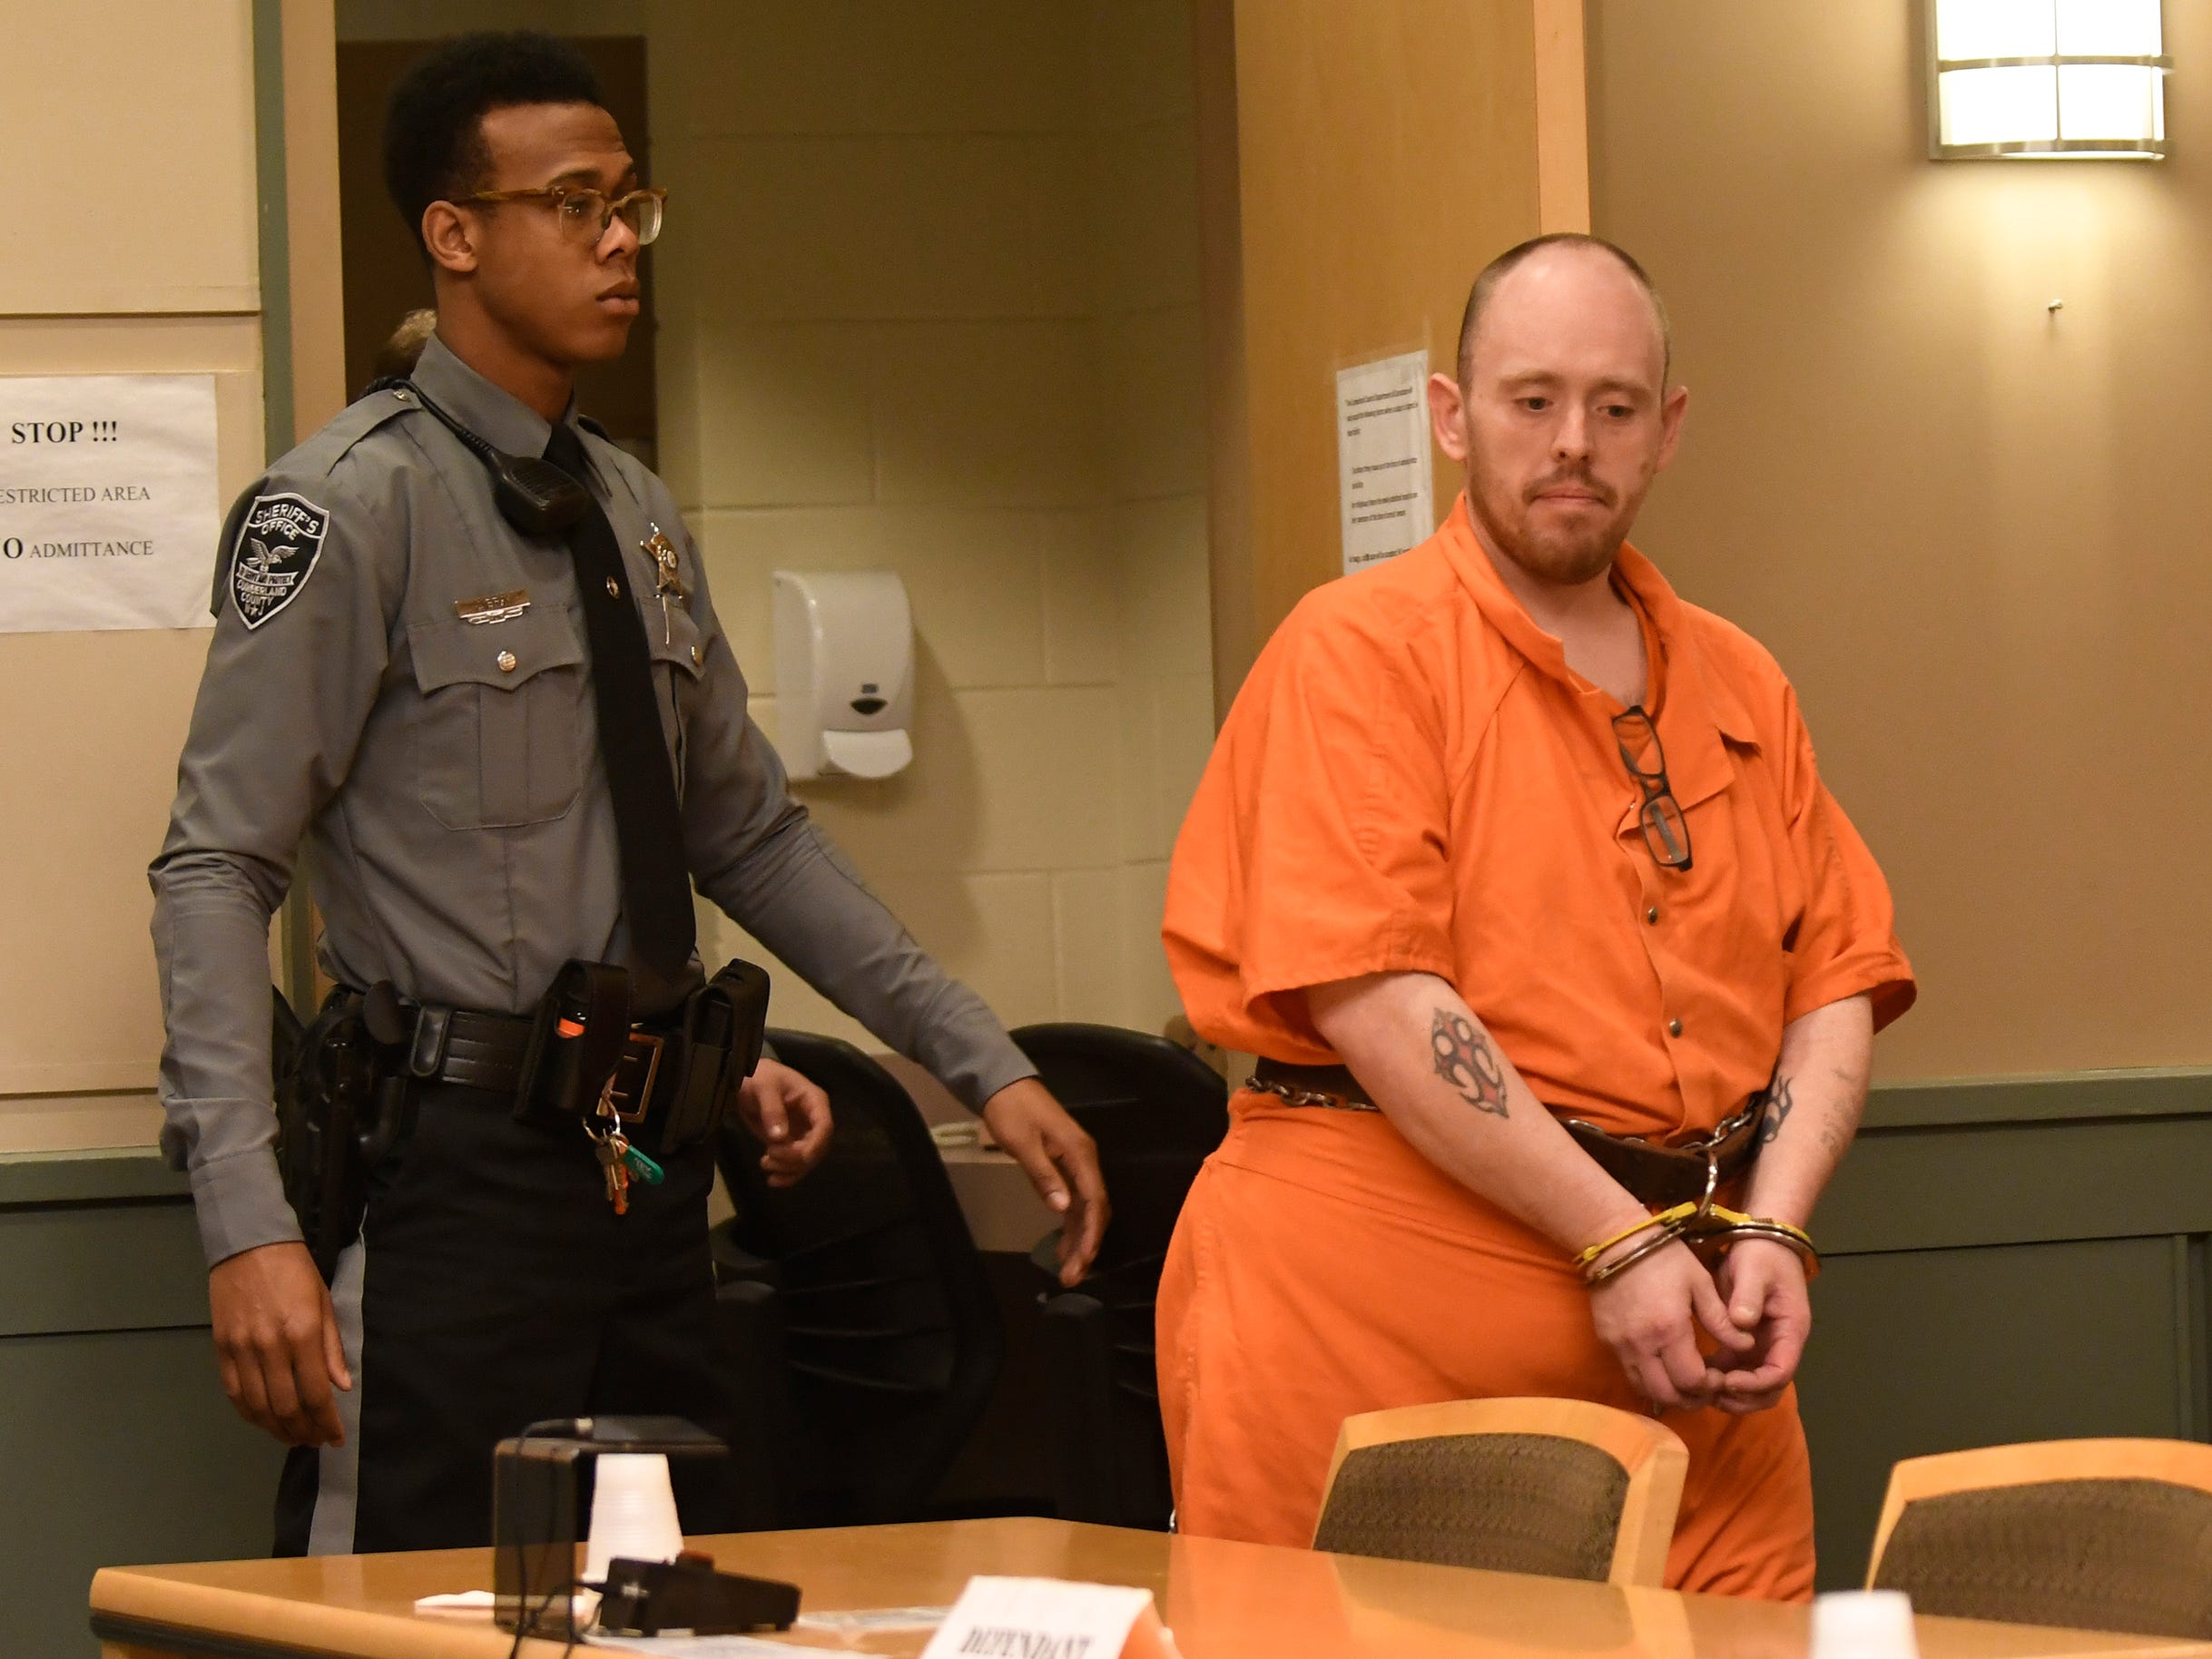 Leonard J. Zawojski stood in front of Judge Cristen D'Arrigo in Cumberland County Superior Court on Thursday. Zawojski is charged with using a Taser to sexually assault a woman in her Upper Deerfield home.